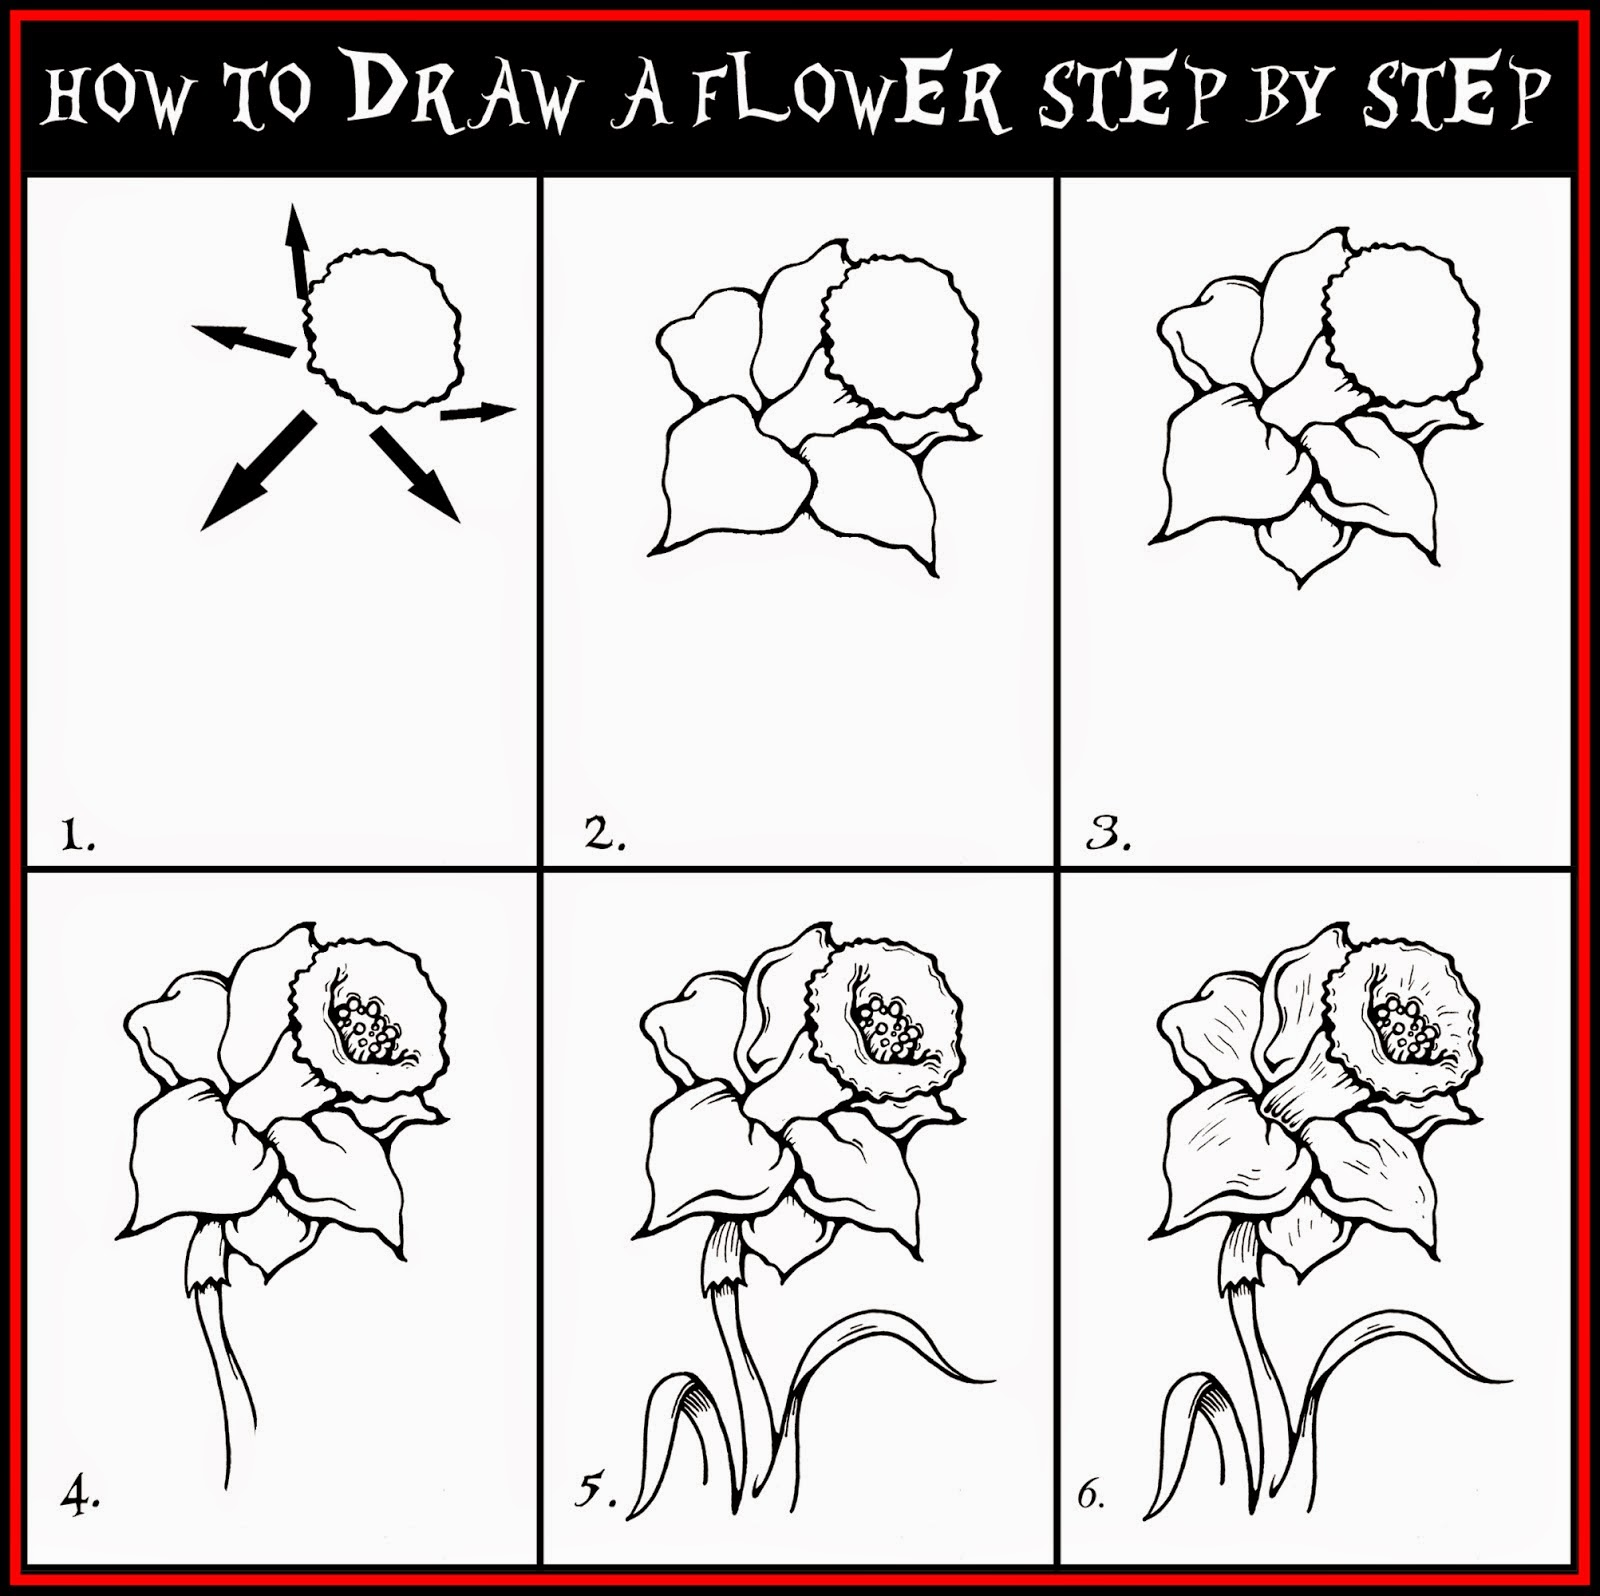 How To Draw A Flower Step By Step Learn To Draw And Paint